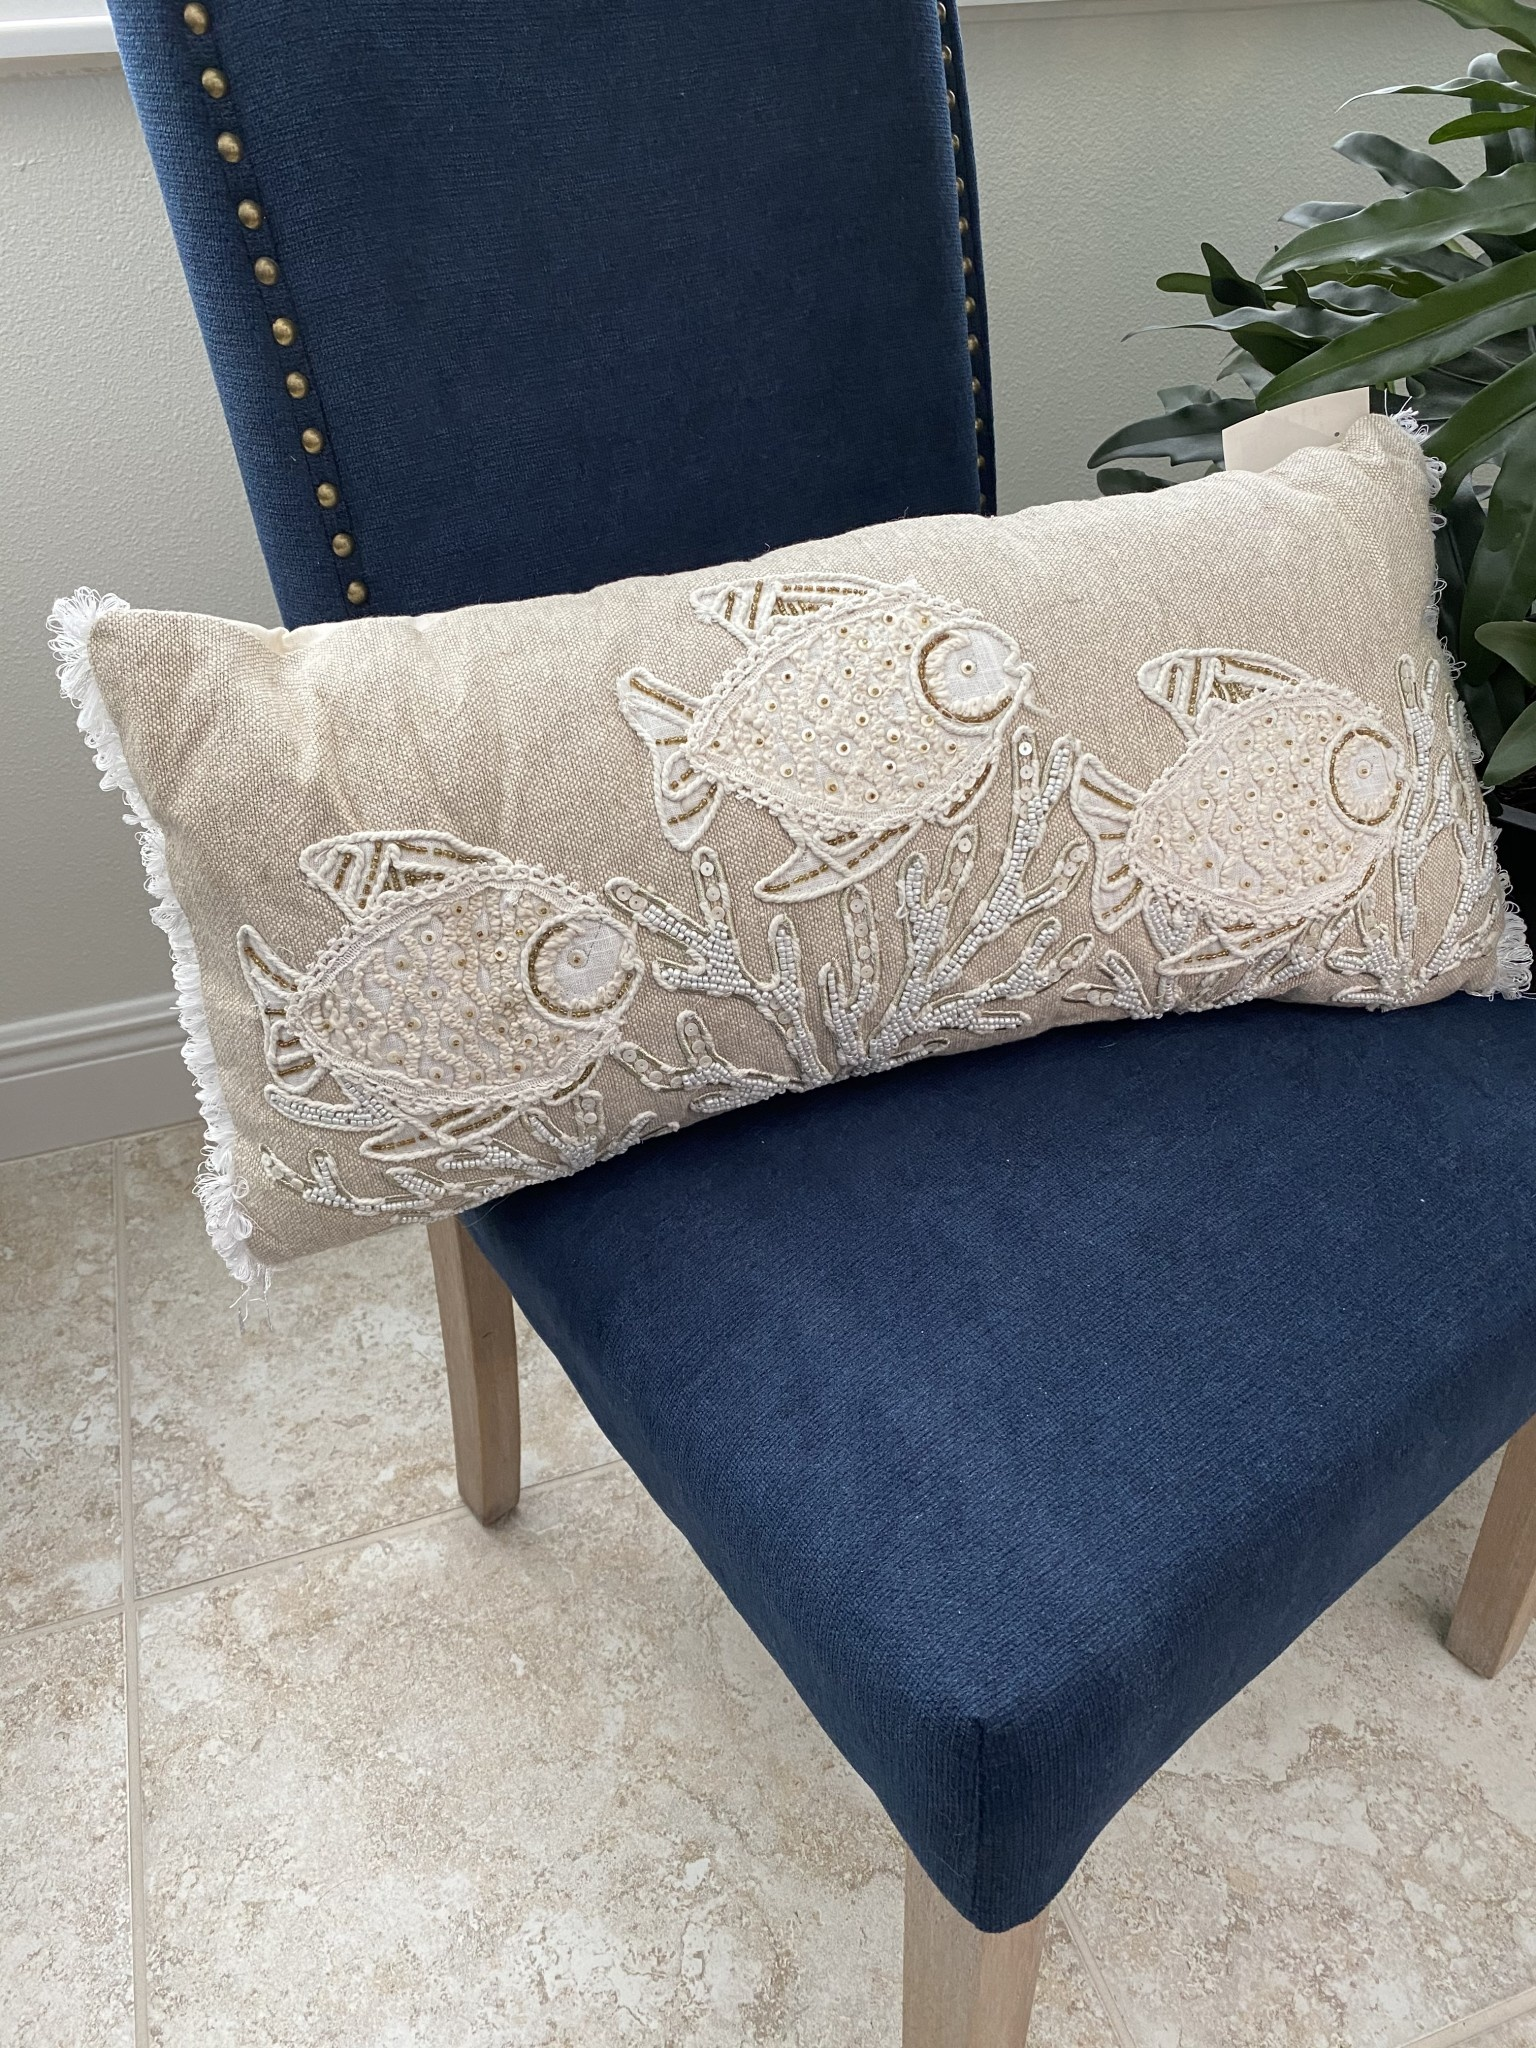 24 x 12 coral and fish beaded linen euro pillow